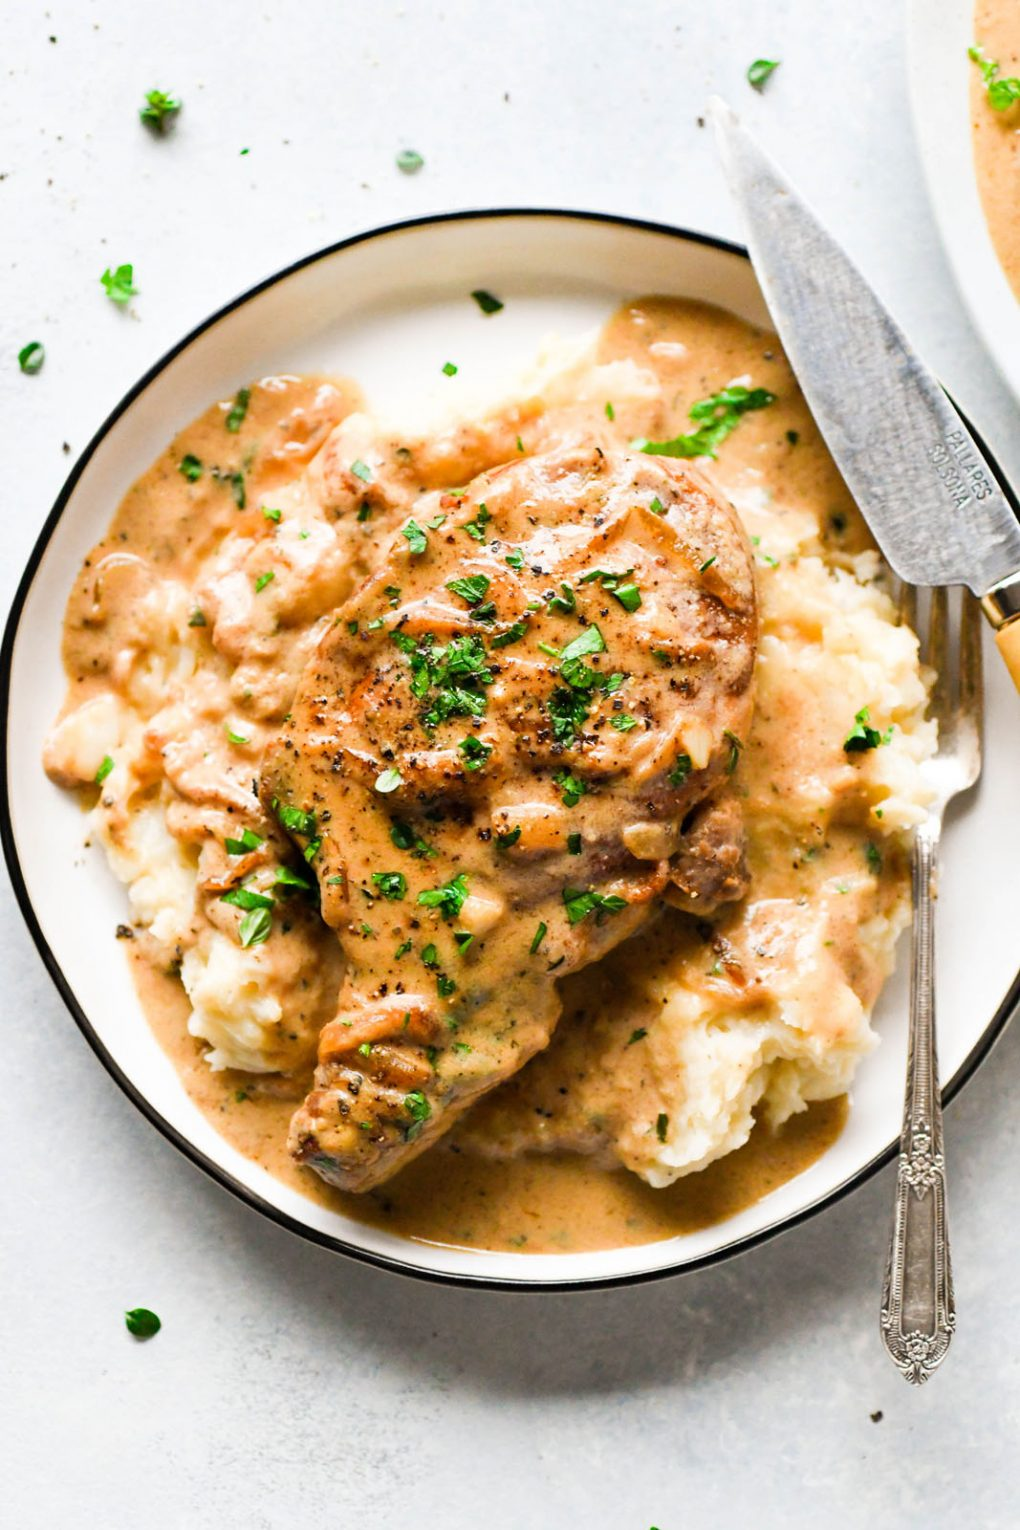 Overhead shot of a smothered pork chop on a plate over mashed potatoes topped with plenty of gravy. Garnished with chopped green parsley on a light colored background.